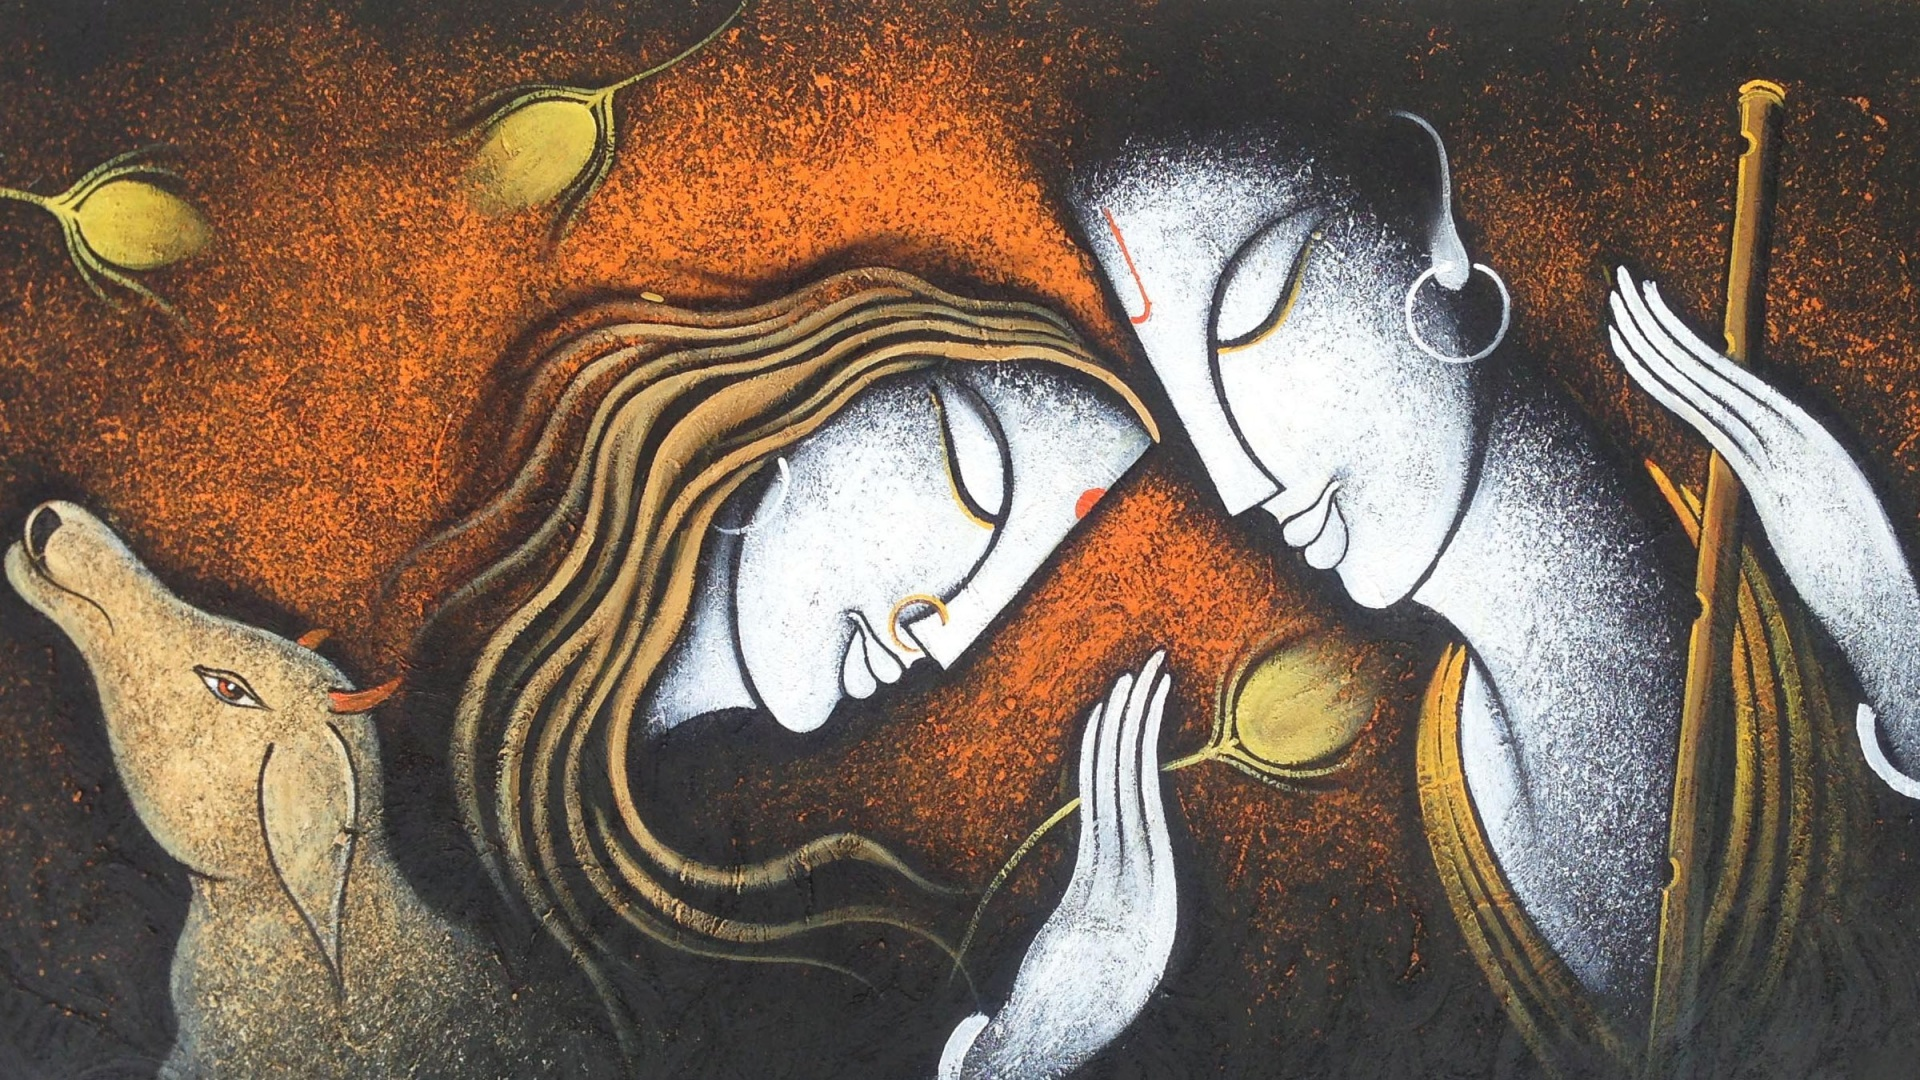 Radha Krishna Painting Wallpapers - 1920x1080 - 1003485